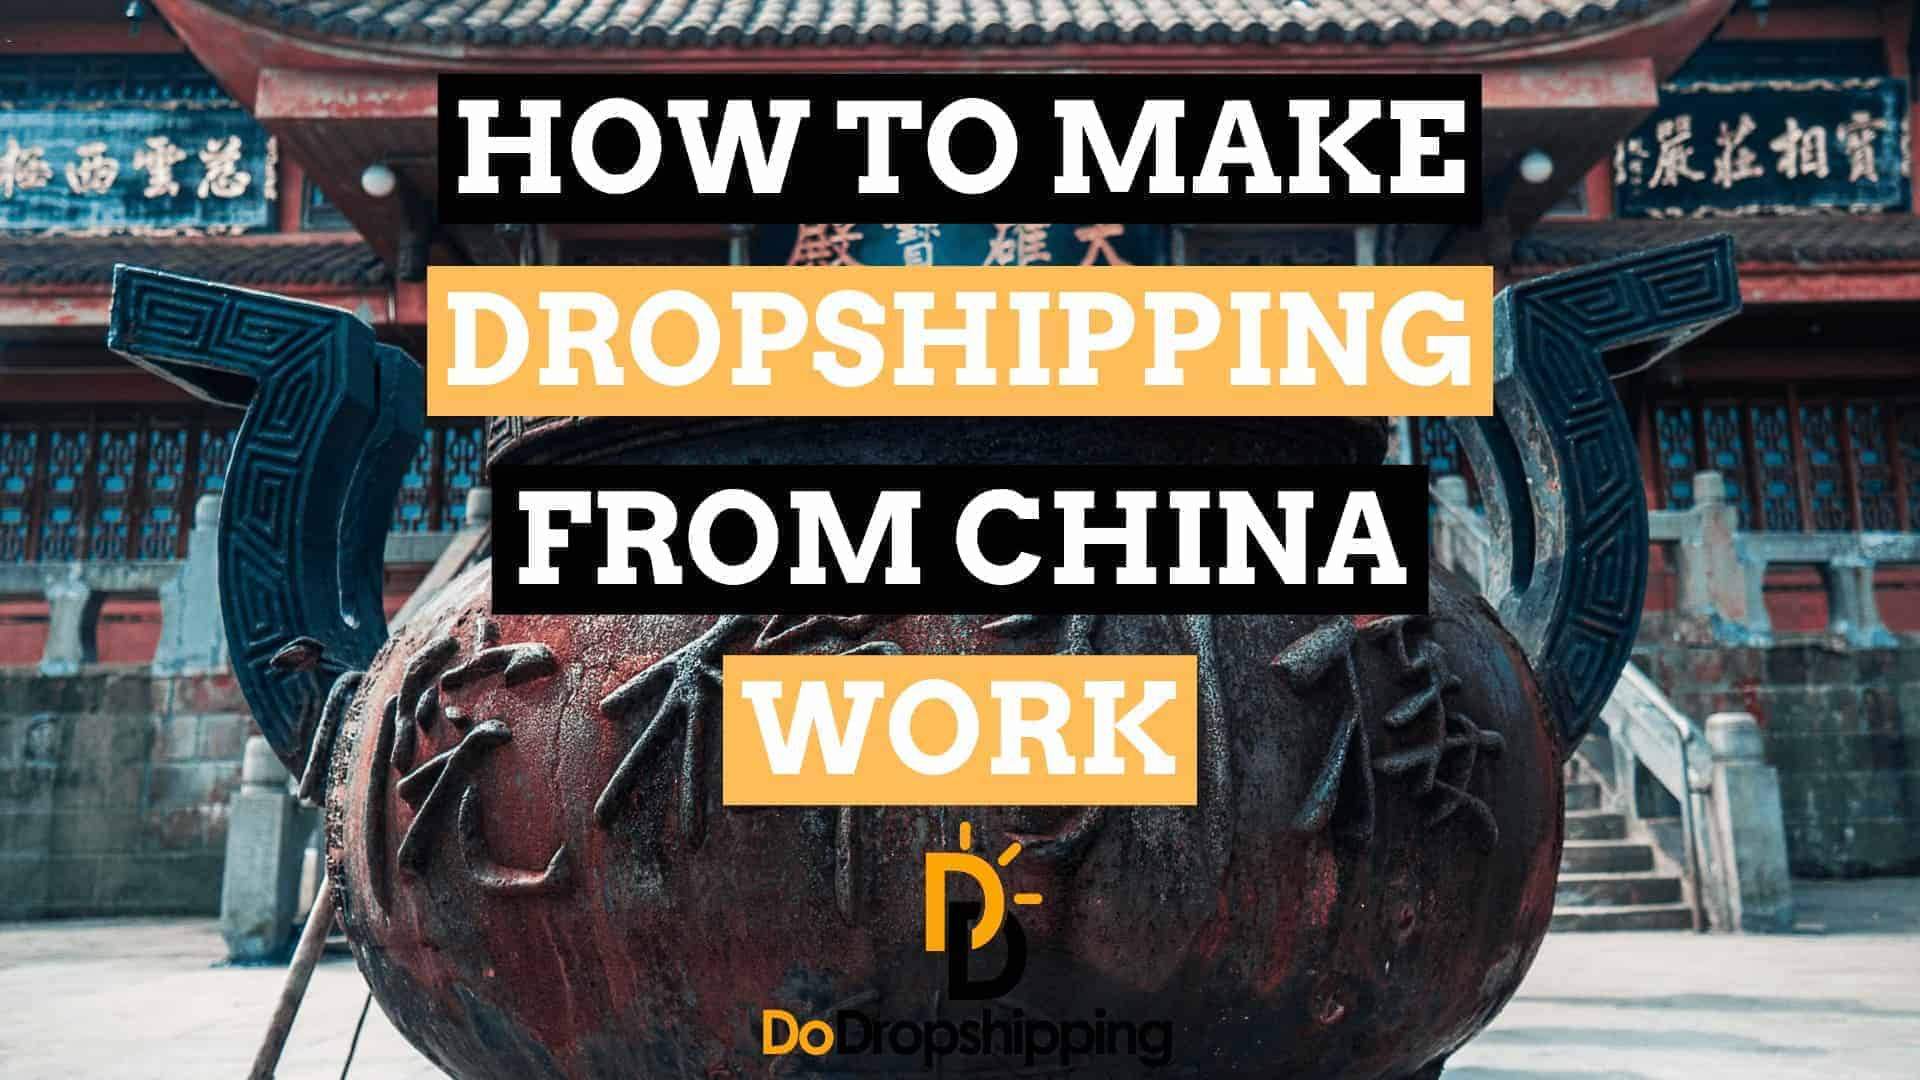 Dropshipping From China | 10 Ways to Make It Work